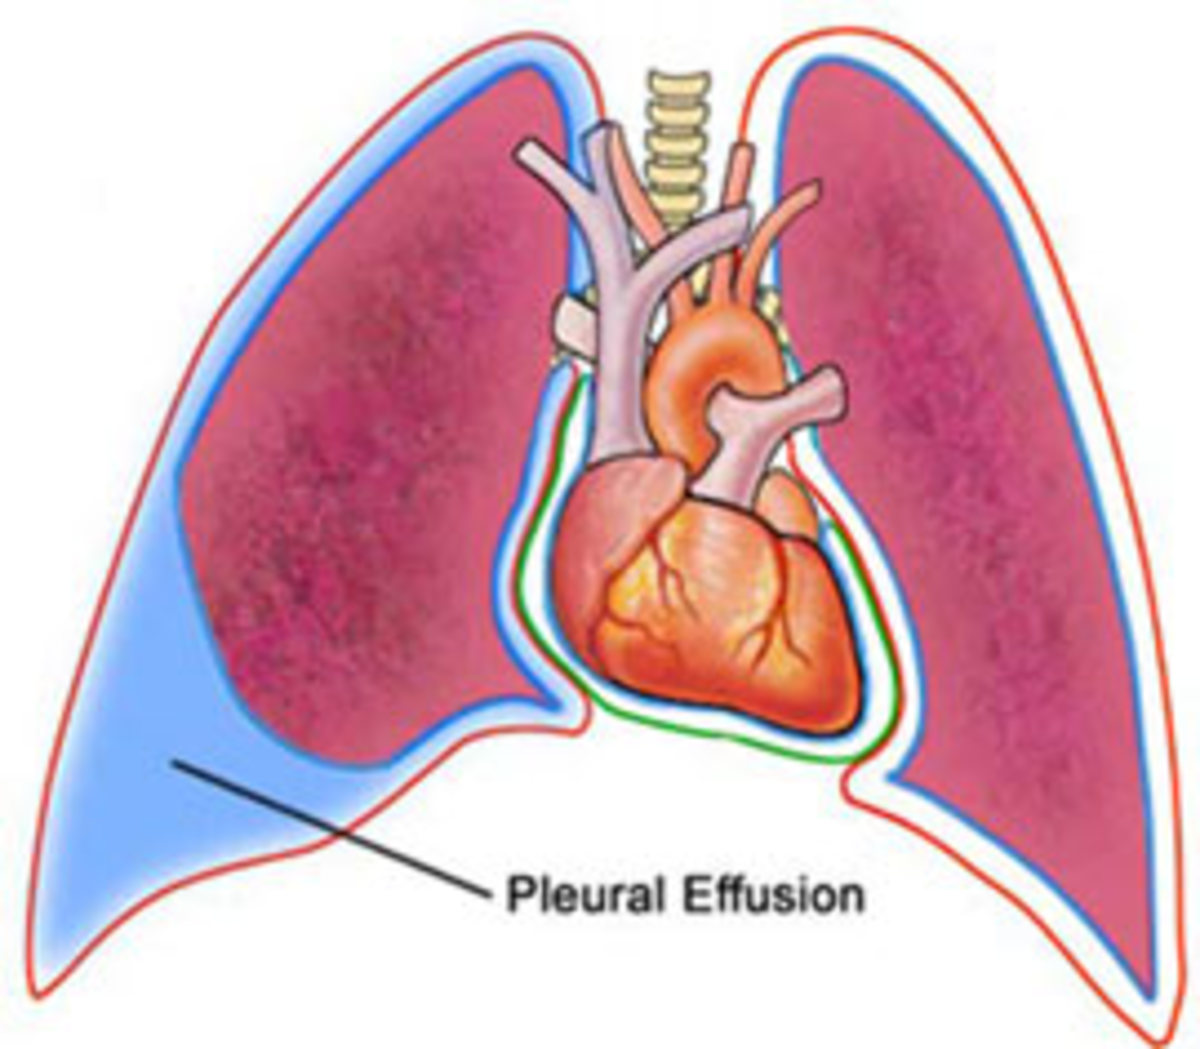 Pleural effusion is usually diagnosed on the basis of medical history and physical exam, and confirmed by chest x-ray. Once accumulated fluid is more than 300 ml,